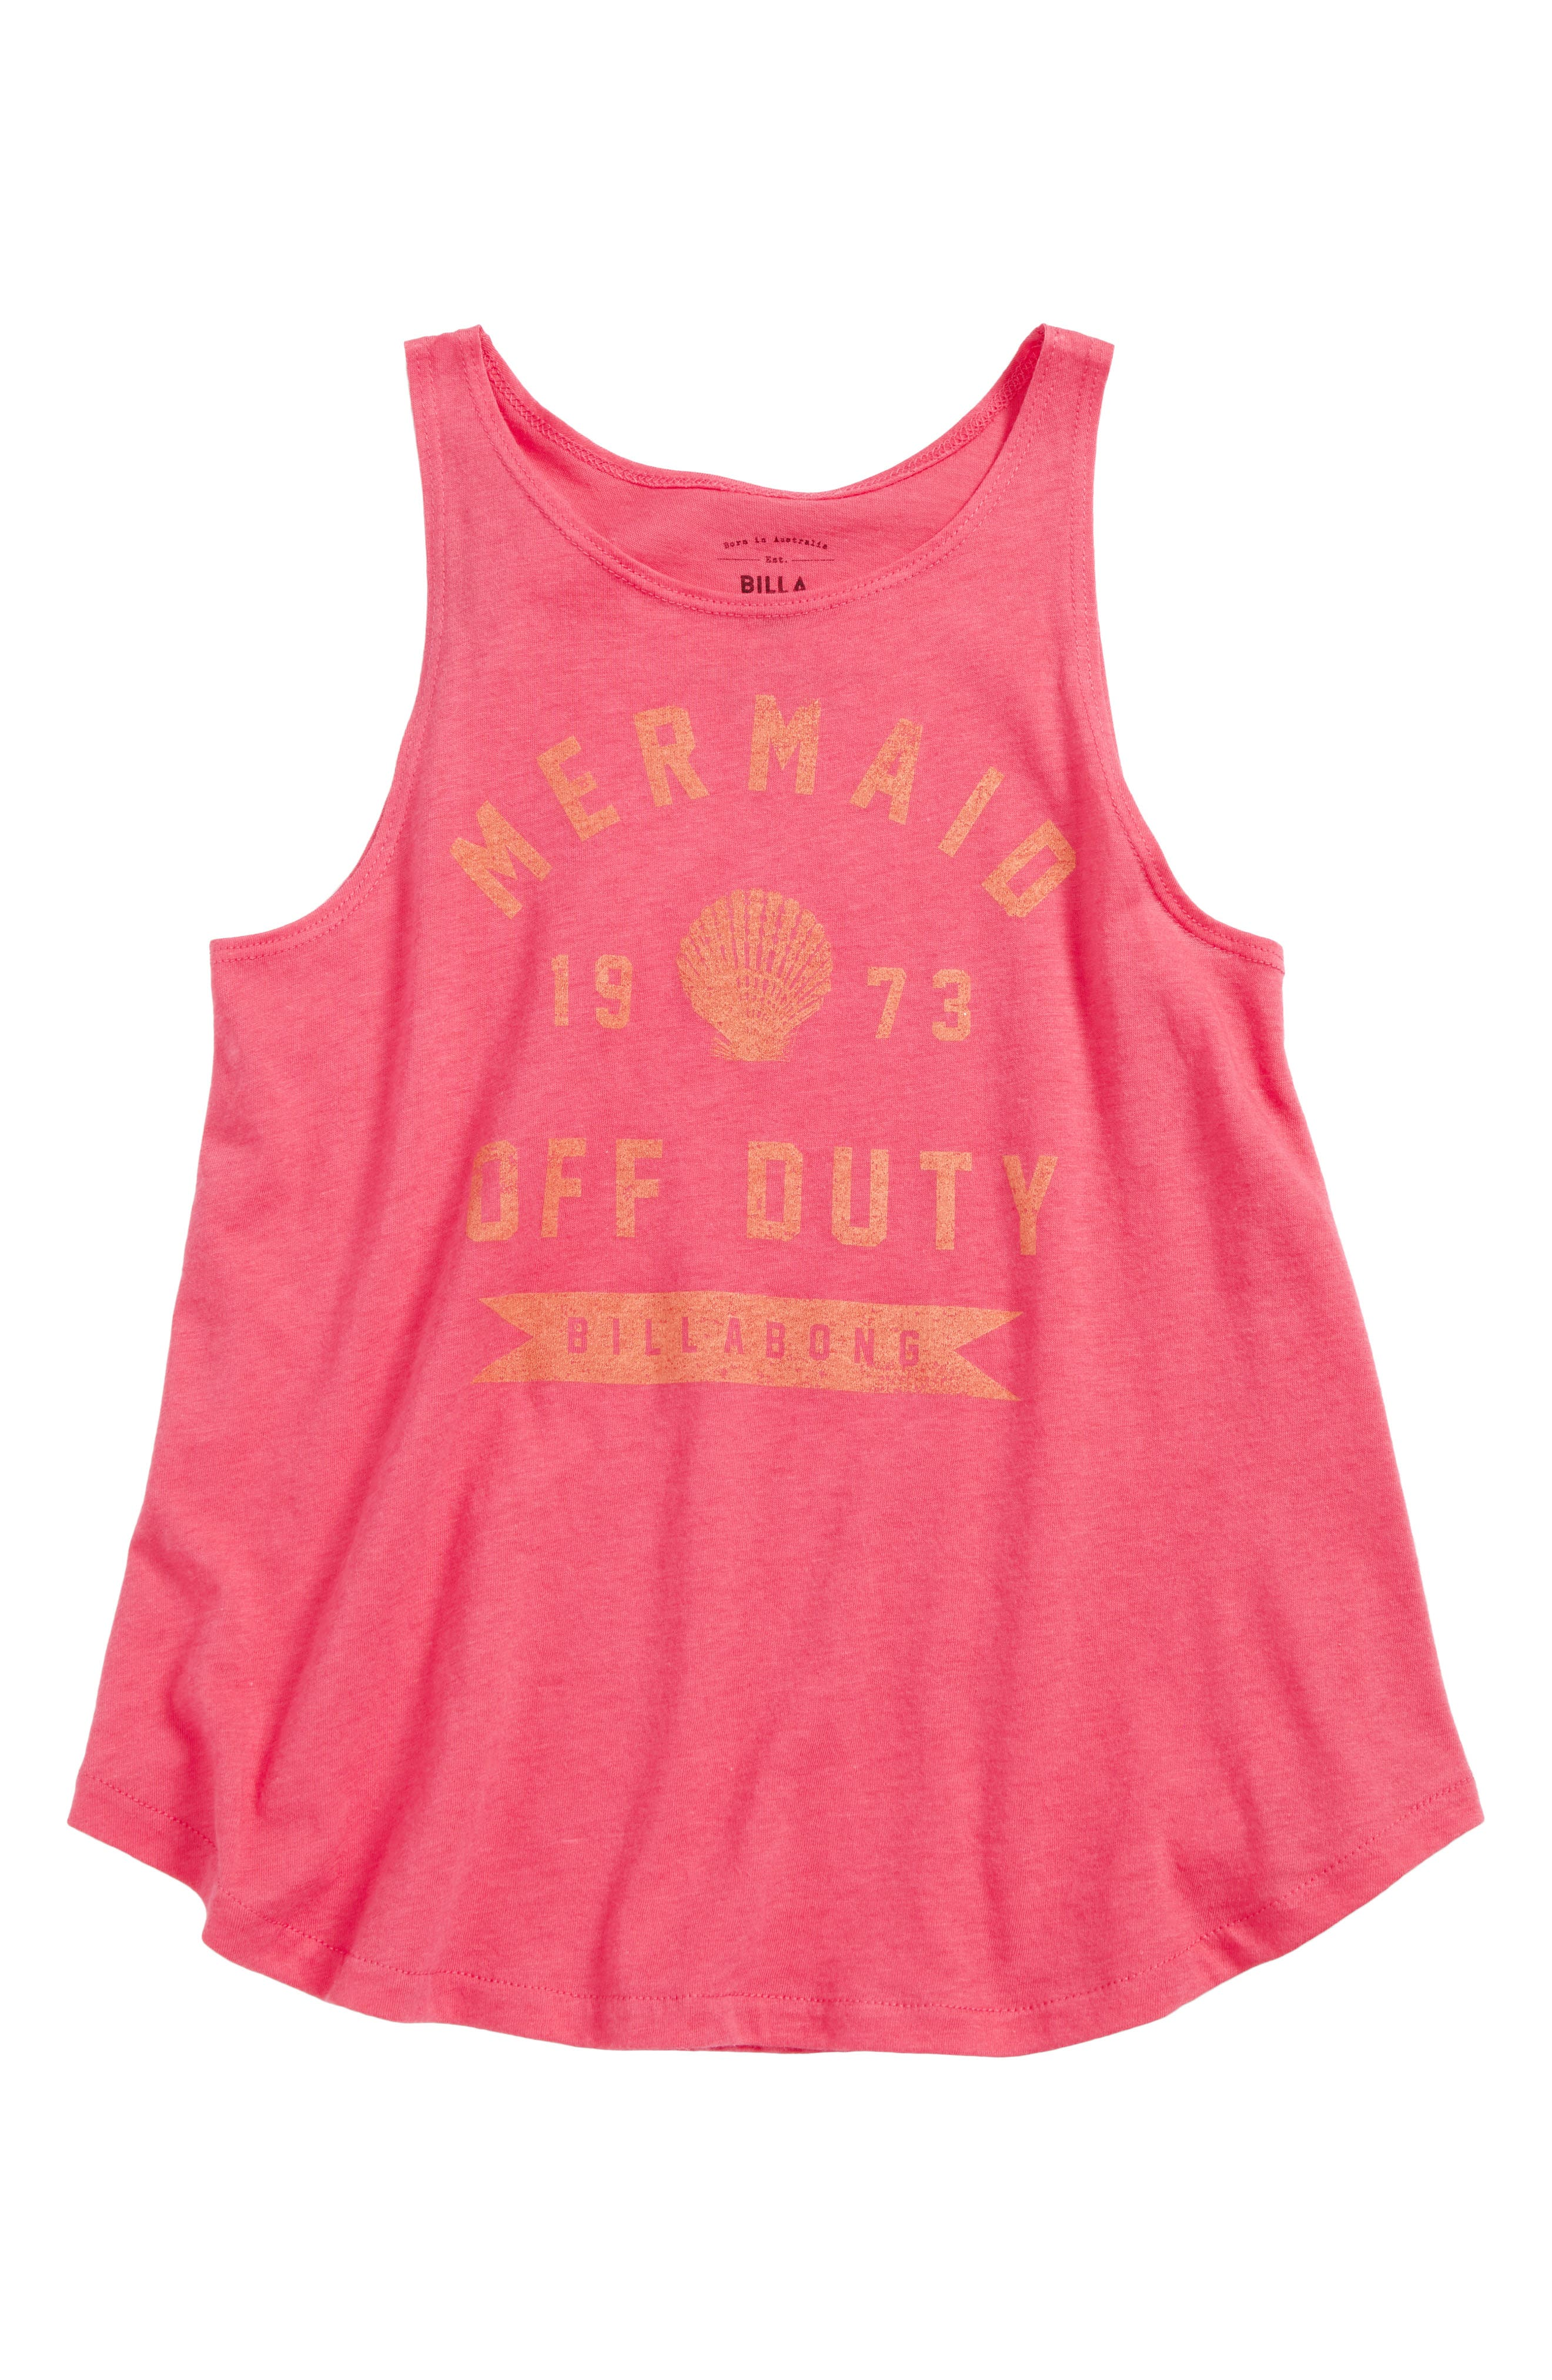 Off Duty Mermaid Graphic Tank,                         Main,                         color, 950